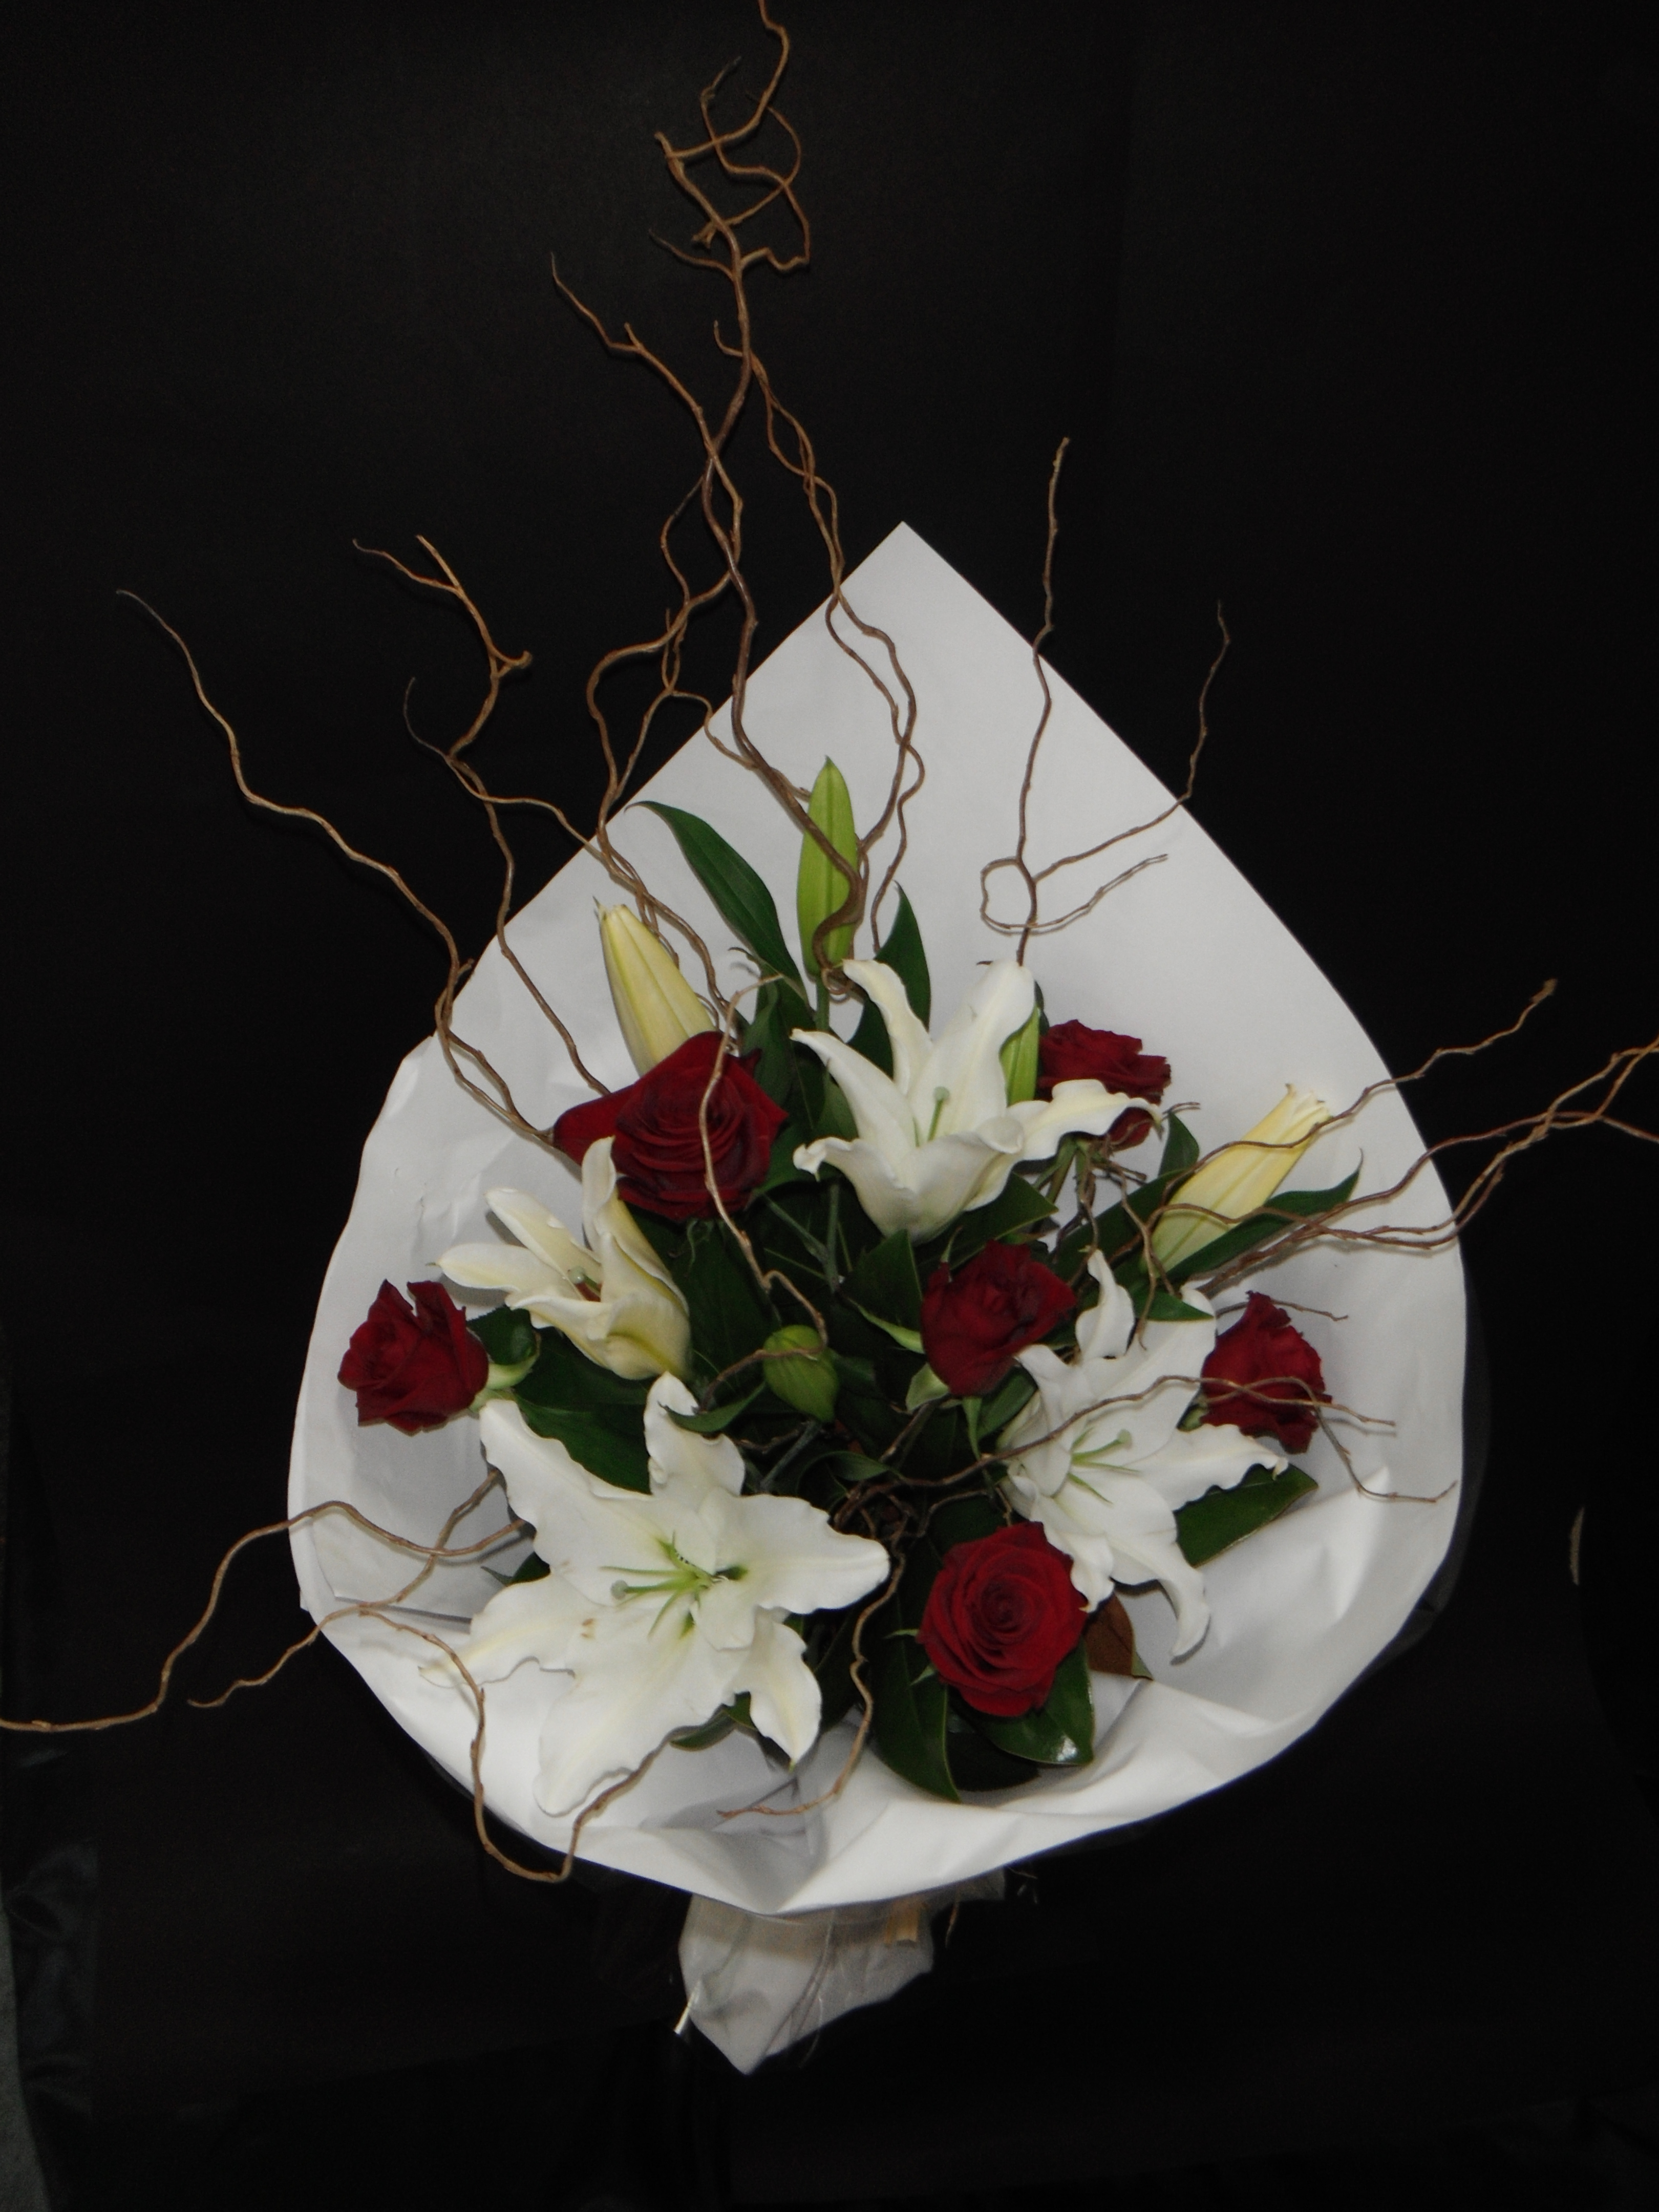 Red roses and white lilys